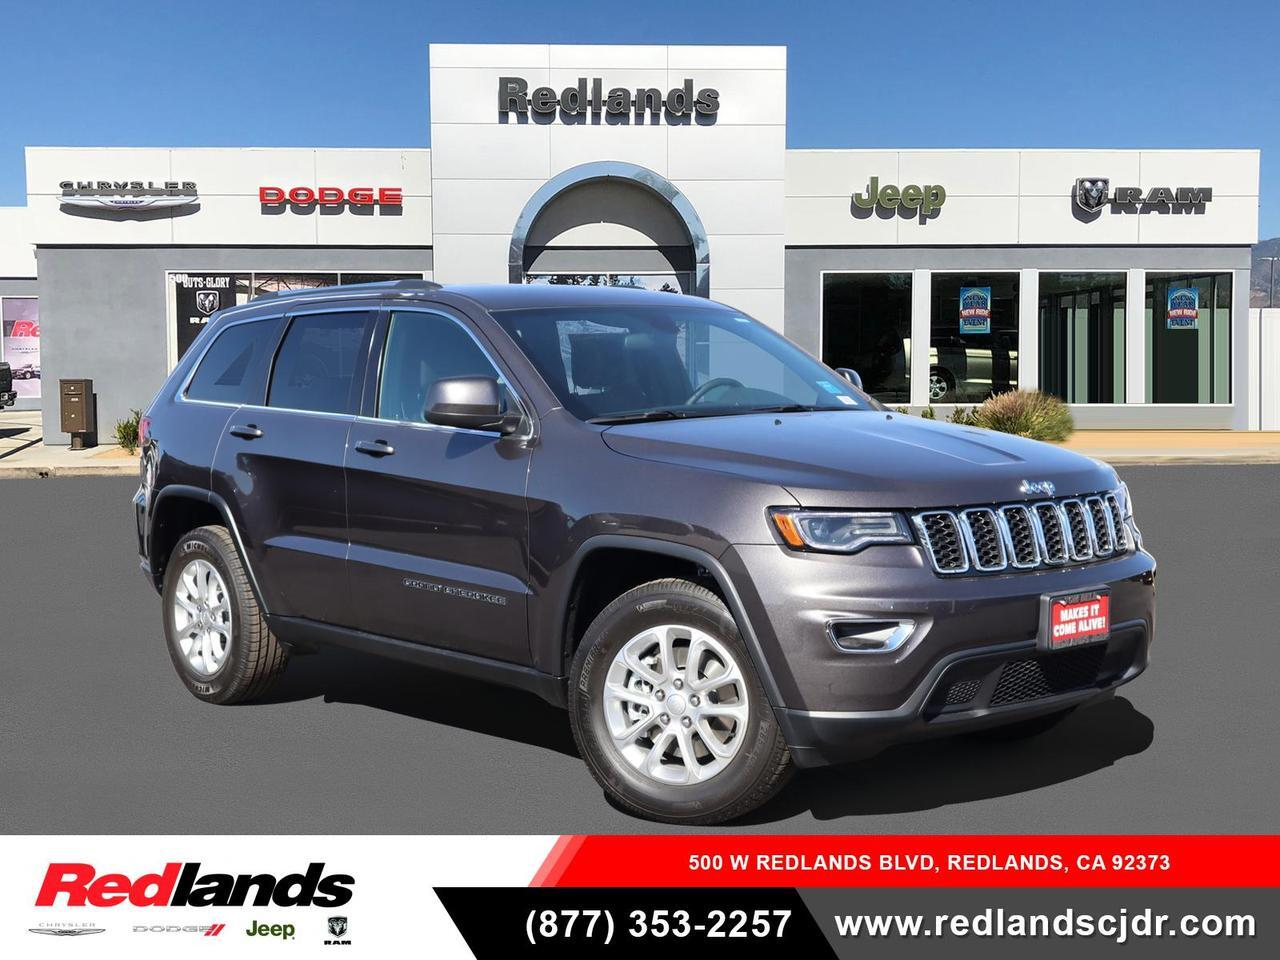 2021 Jeep Grand Cherokee LAREDO E 4X4 Redlands CA